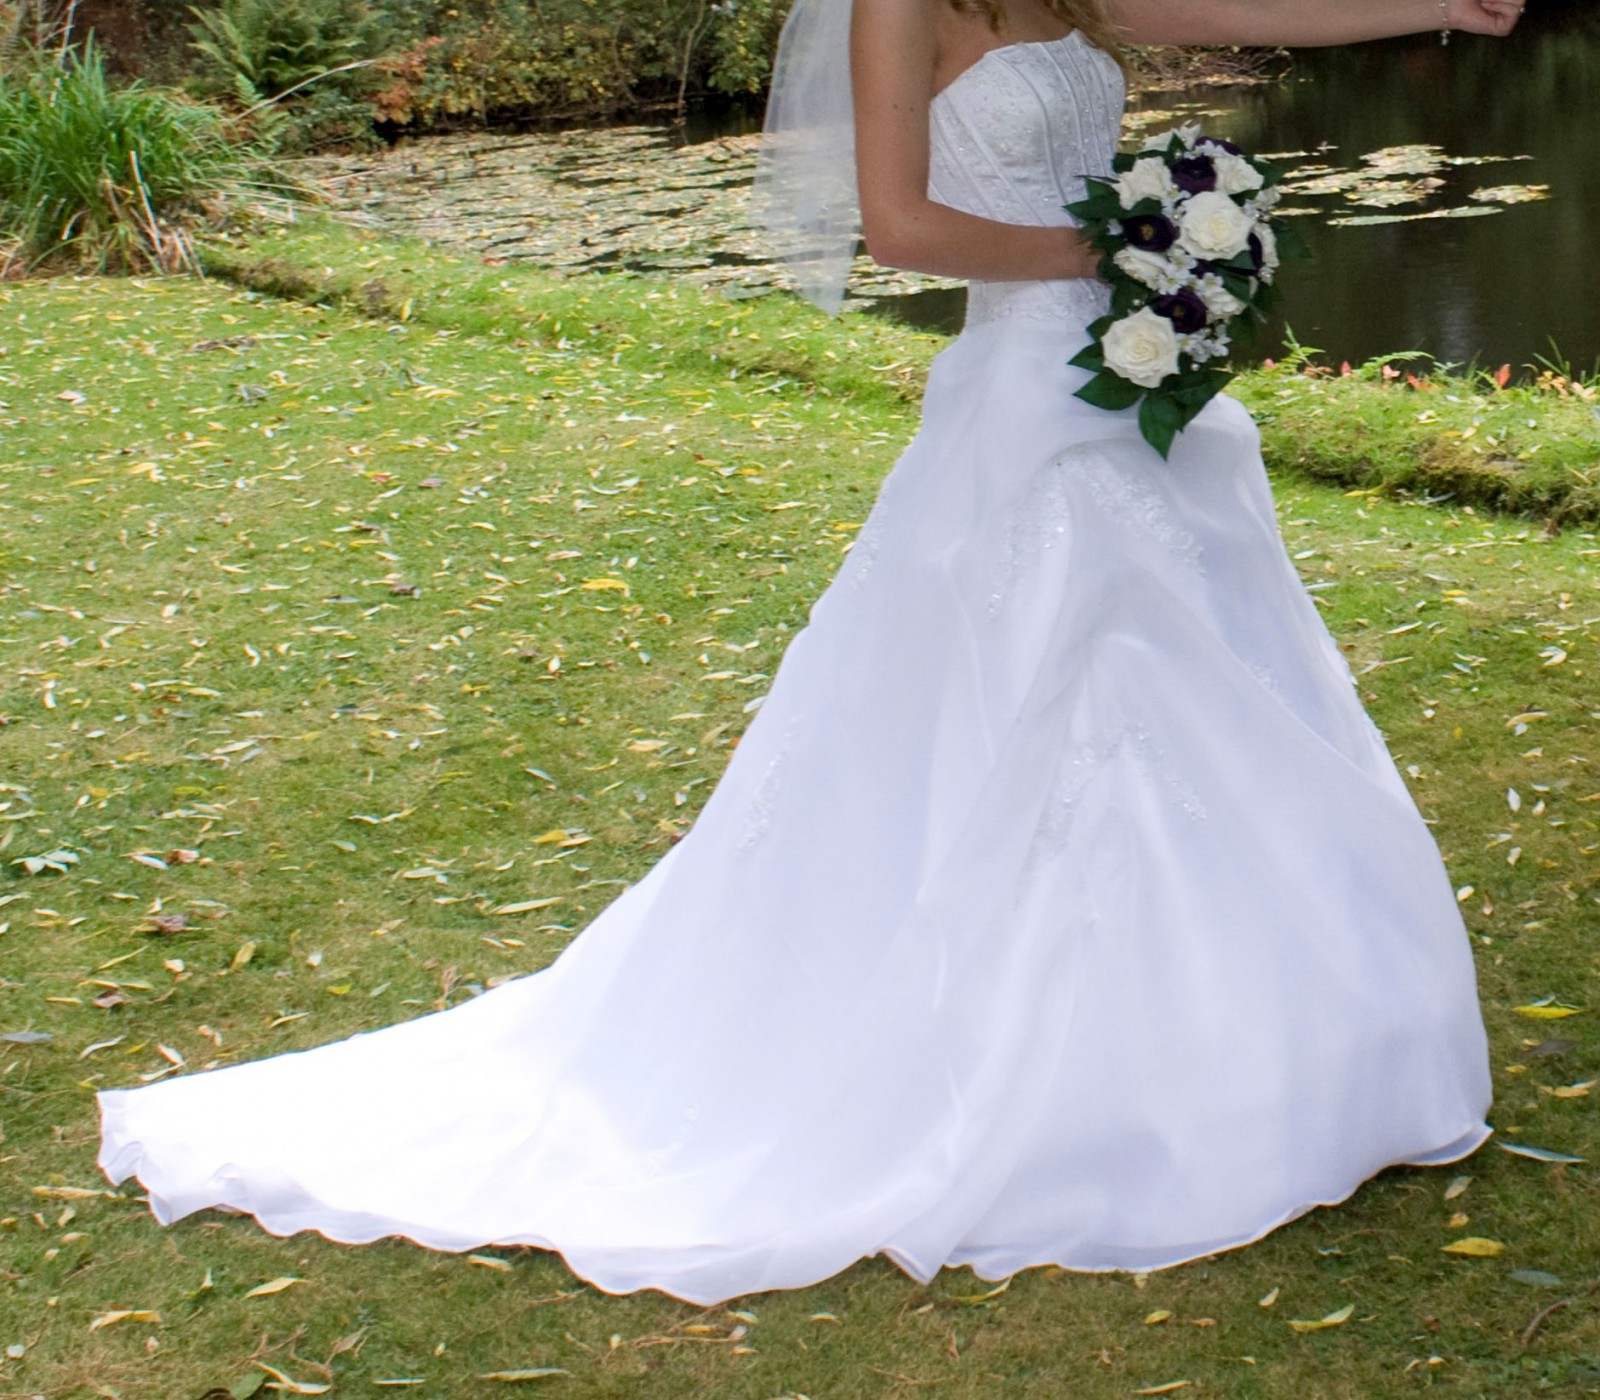 Henry Roth Second Hand Wedding Dress On Sale 82 Off: Two Hearts Second Hand Wedding Dress On Sale 89% Off